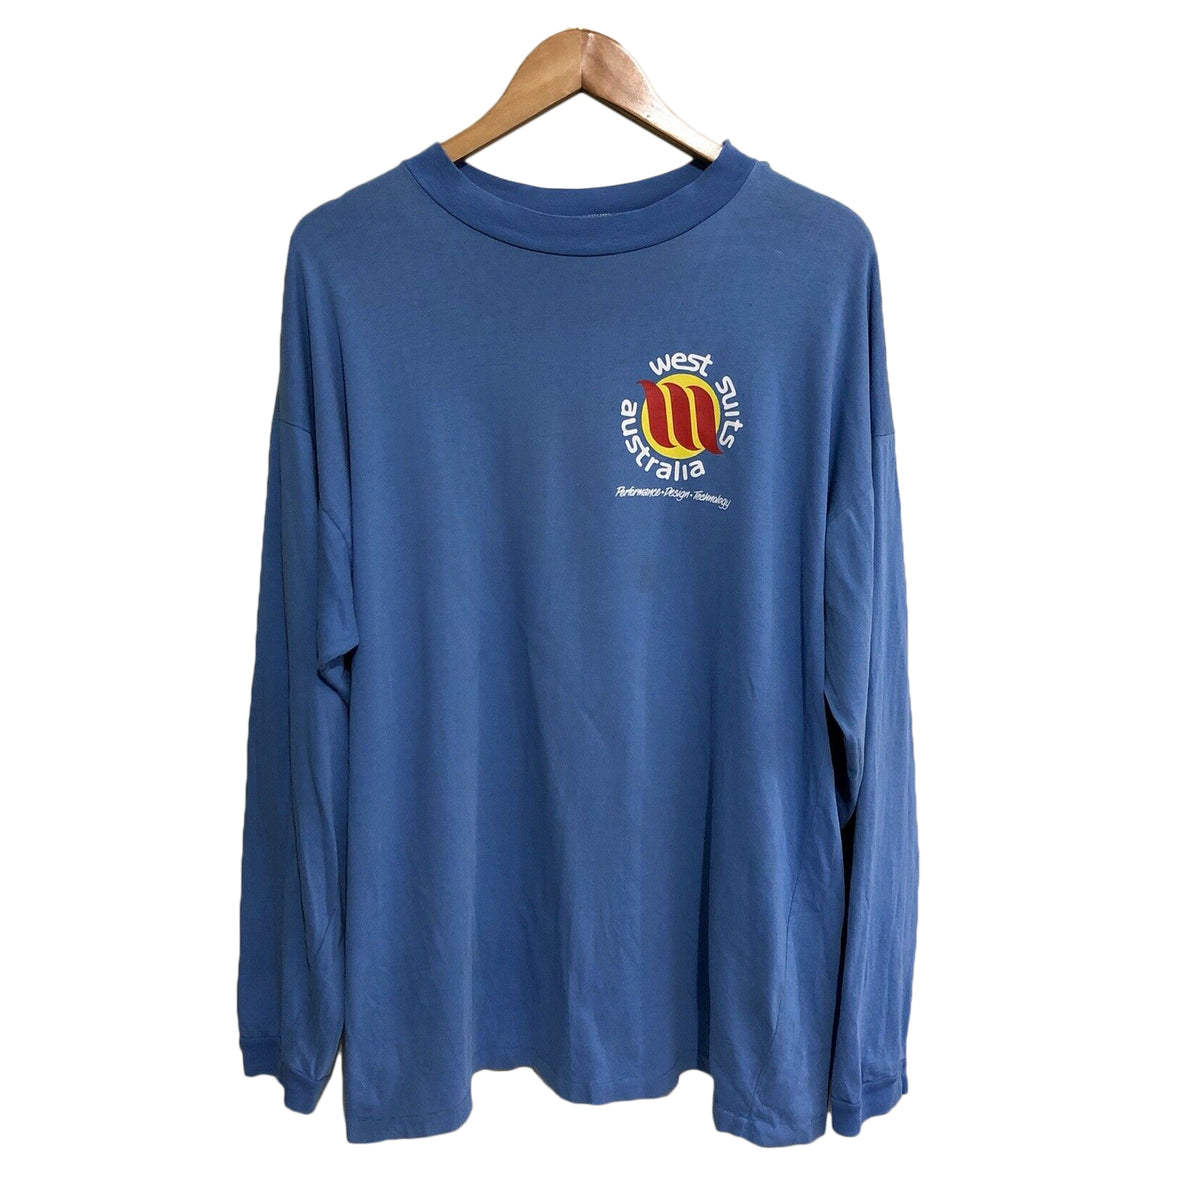 West Surfing Vintage Surfwear Long Sleeve T-Shirt Mens Large